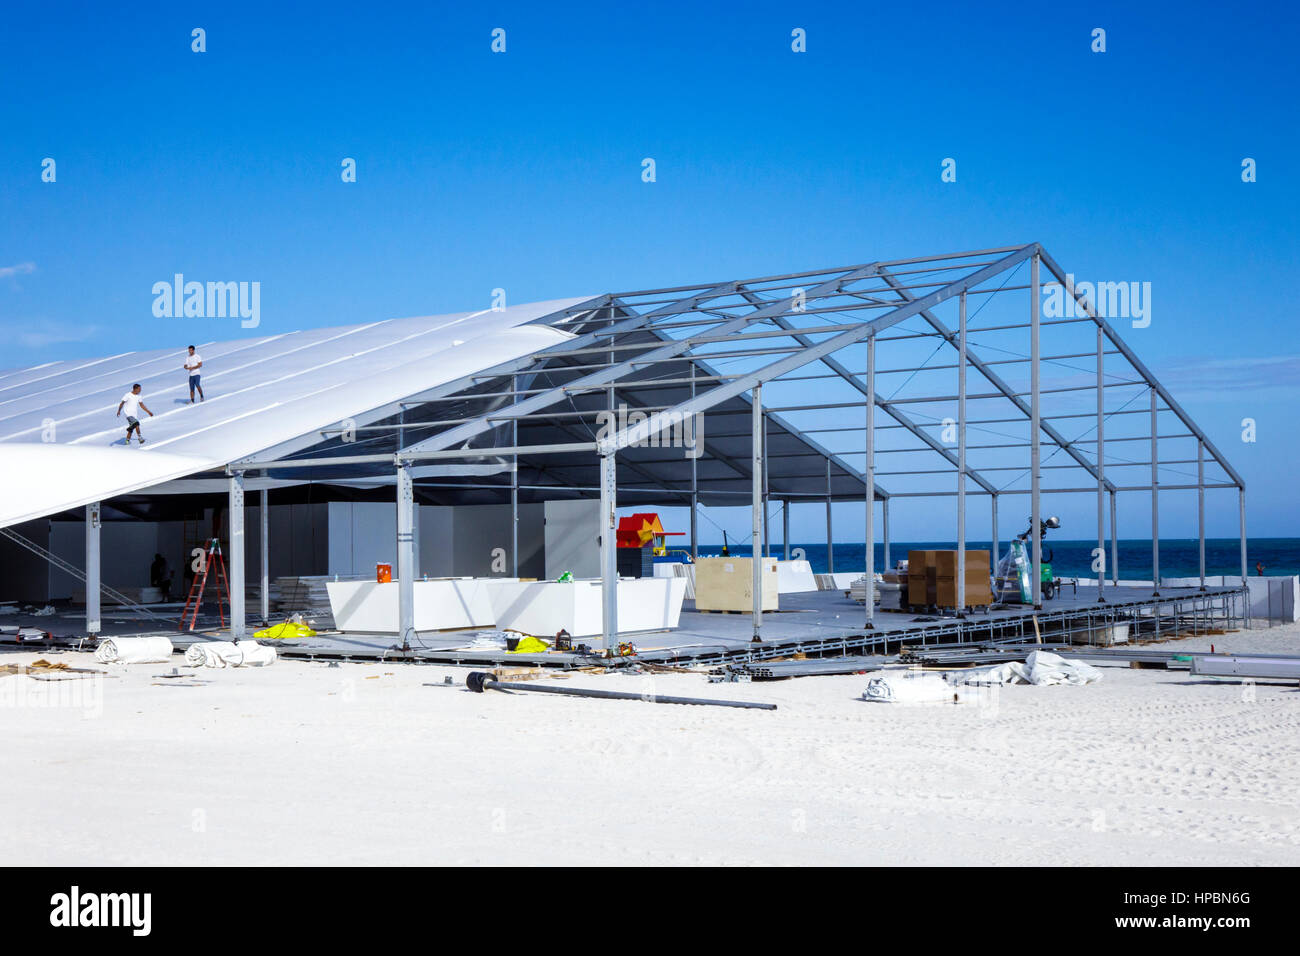 Miami Beach Florida Lummus Park Art Basel Week sand event tent assemble disassemble temporary building frame metal - Stock Image